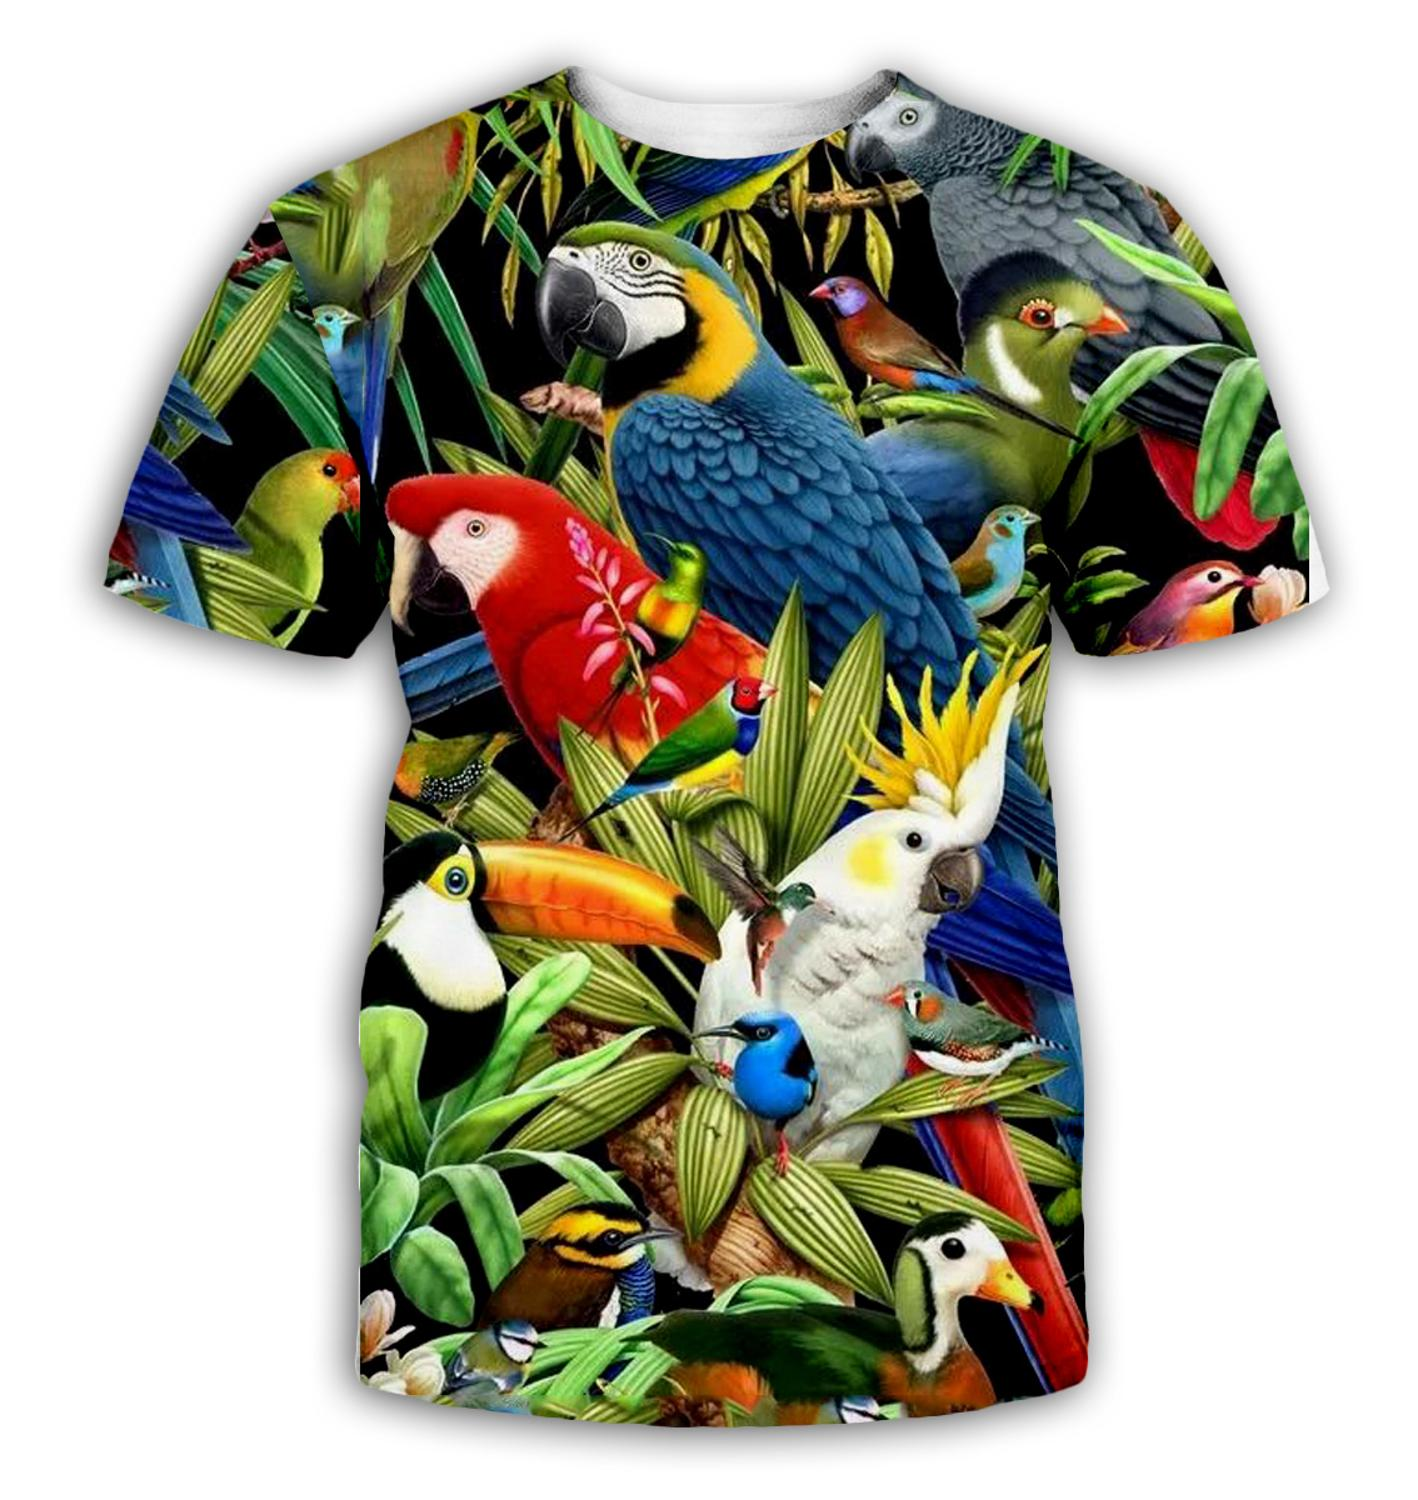 Parrot T Shirt Men Flower Tshirt Hip Hop Tee Brid 3d Print T-shirt Cool Men Women Clothing Casual Tops Sweatshirt Shirt 5XL